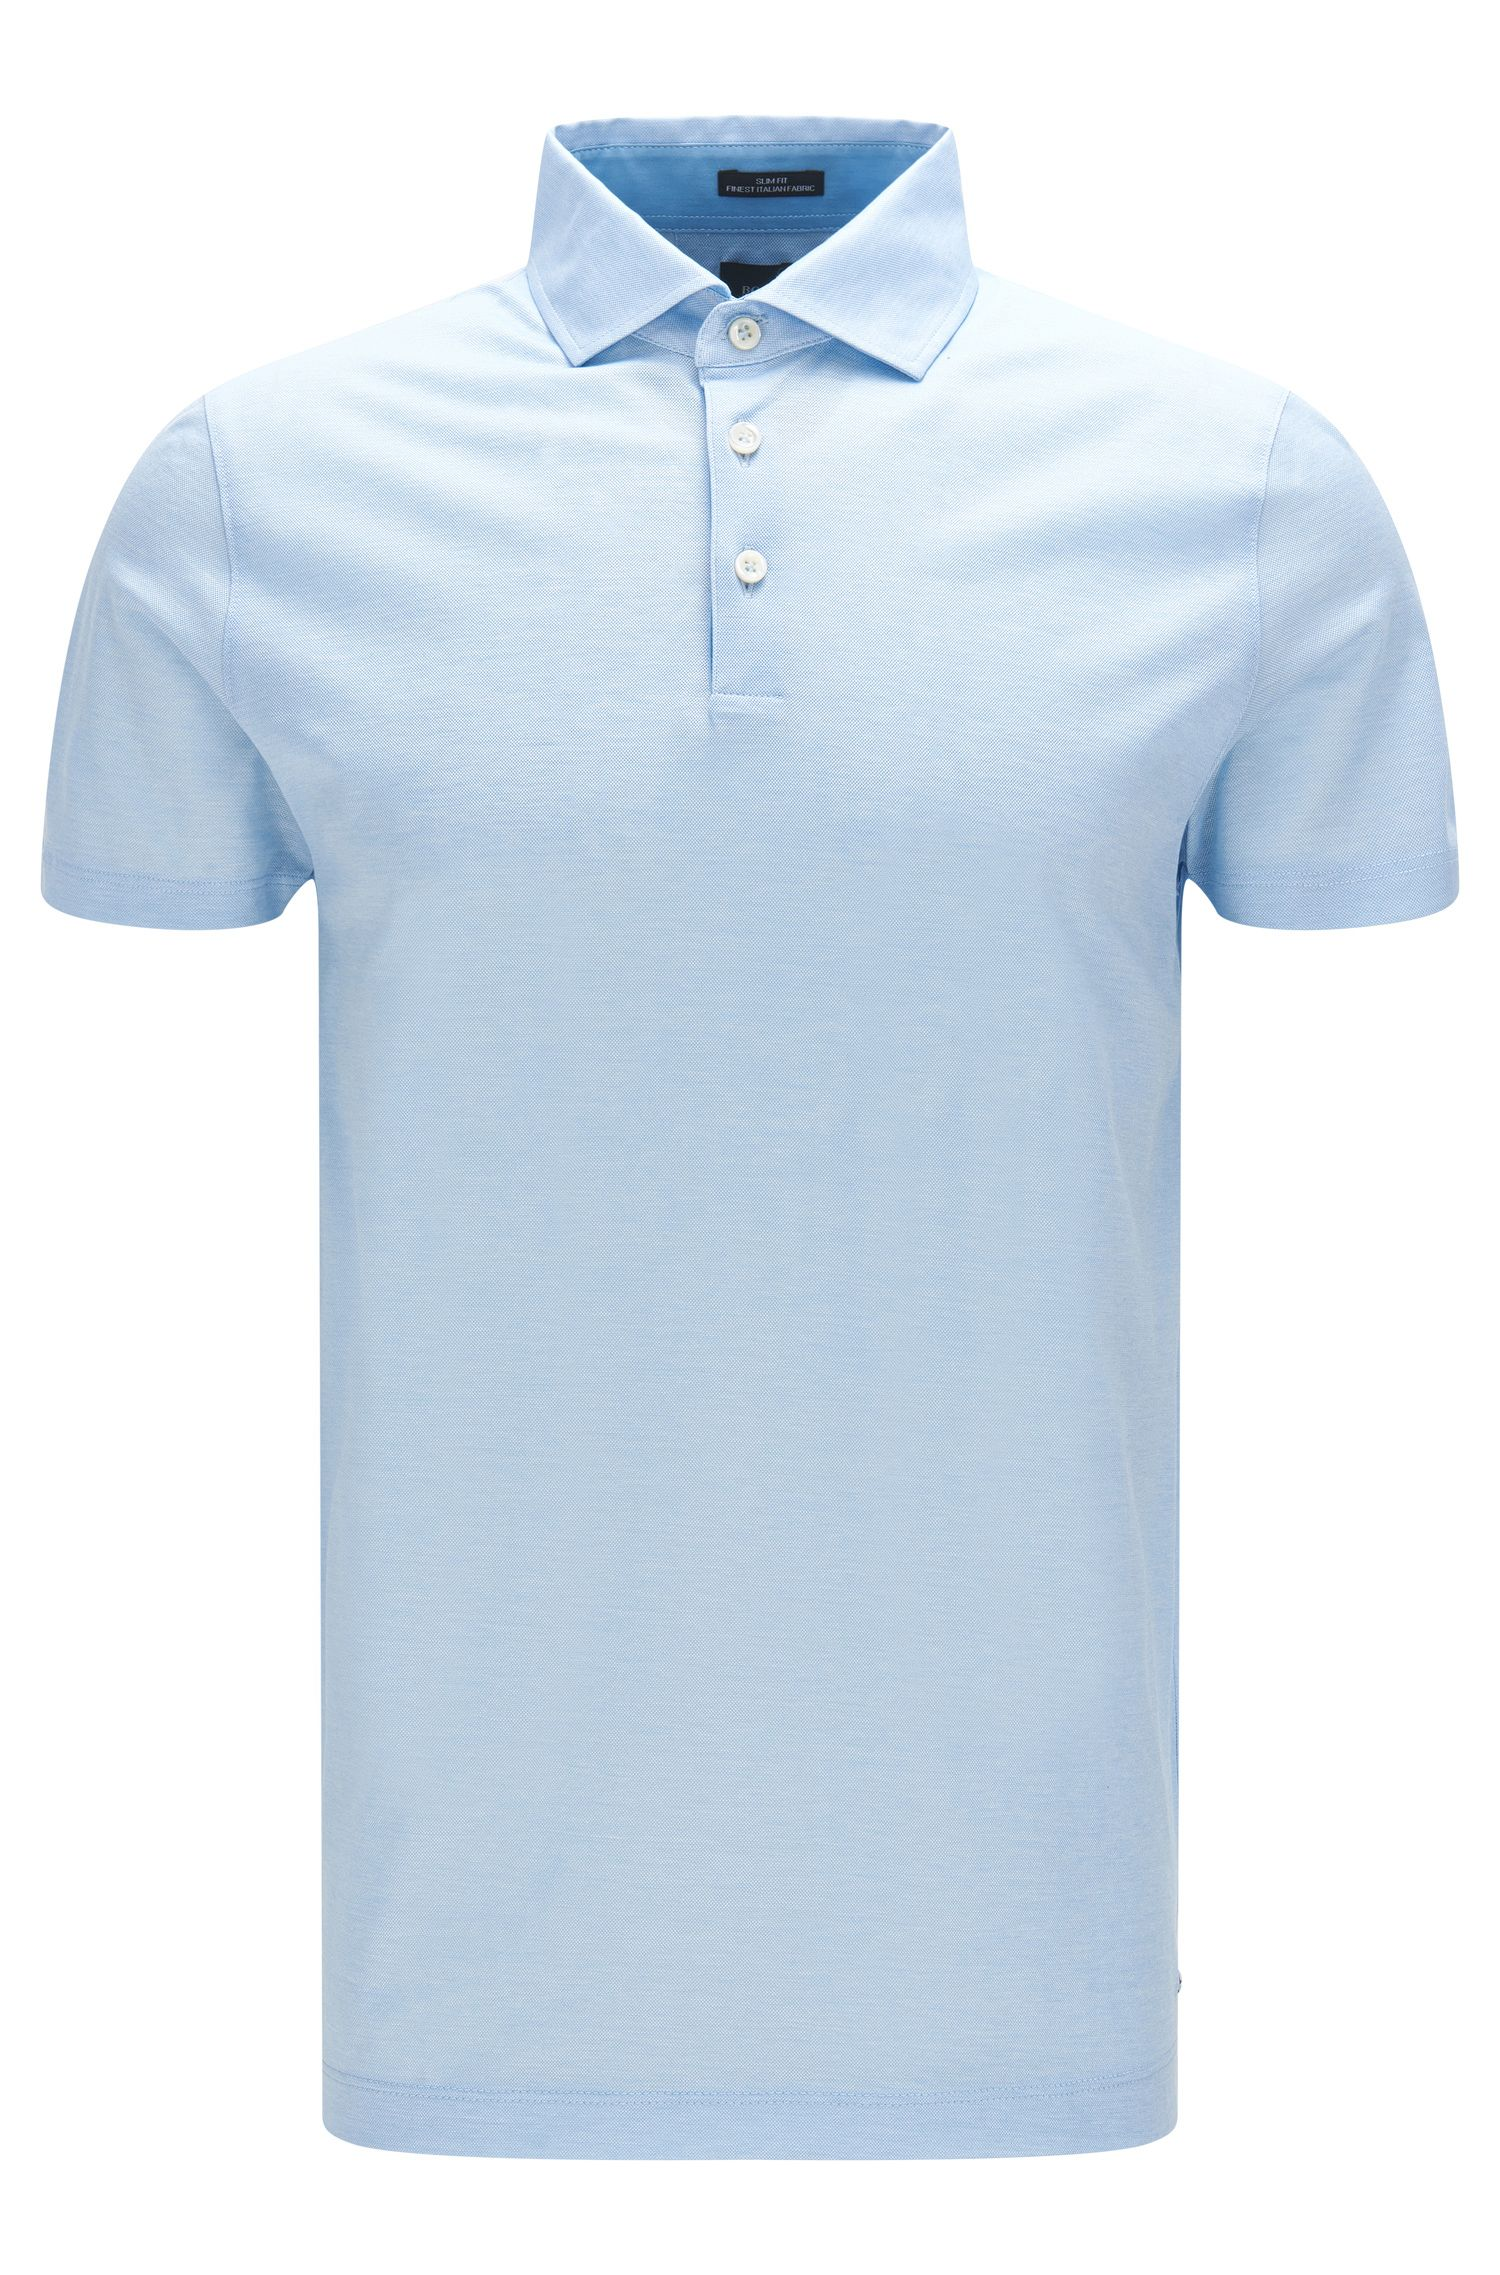 Italian Cotton Jacquard Polo Shirt, Slim Fit | T-Pryde, Light Blue